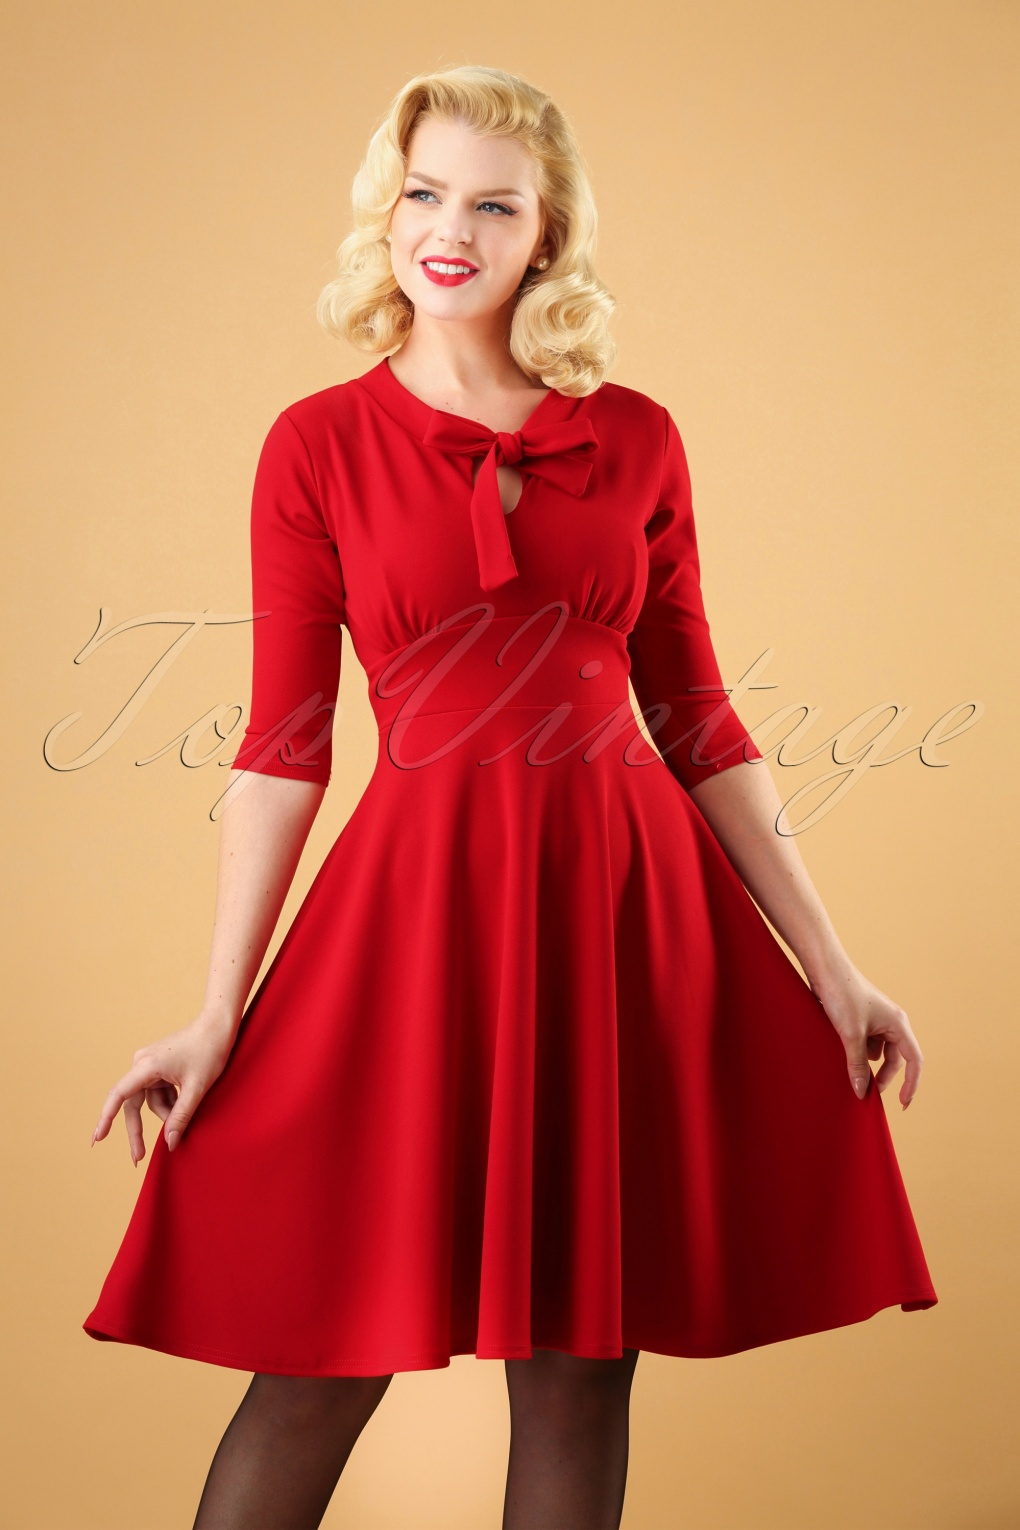 1950s Swing Dresses | 50s Swing Dress 50s Geraldine Swing Dress in Red £53.11 AT vintagedancer.com